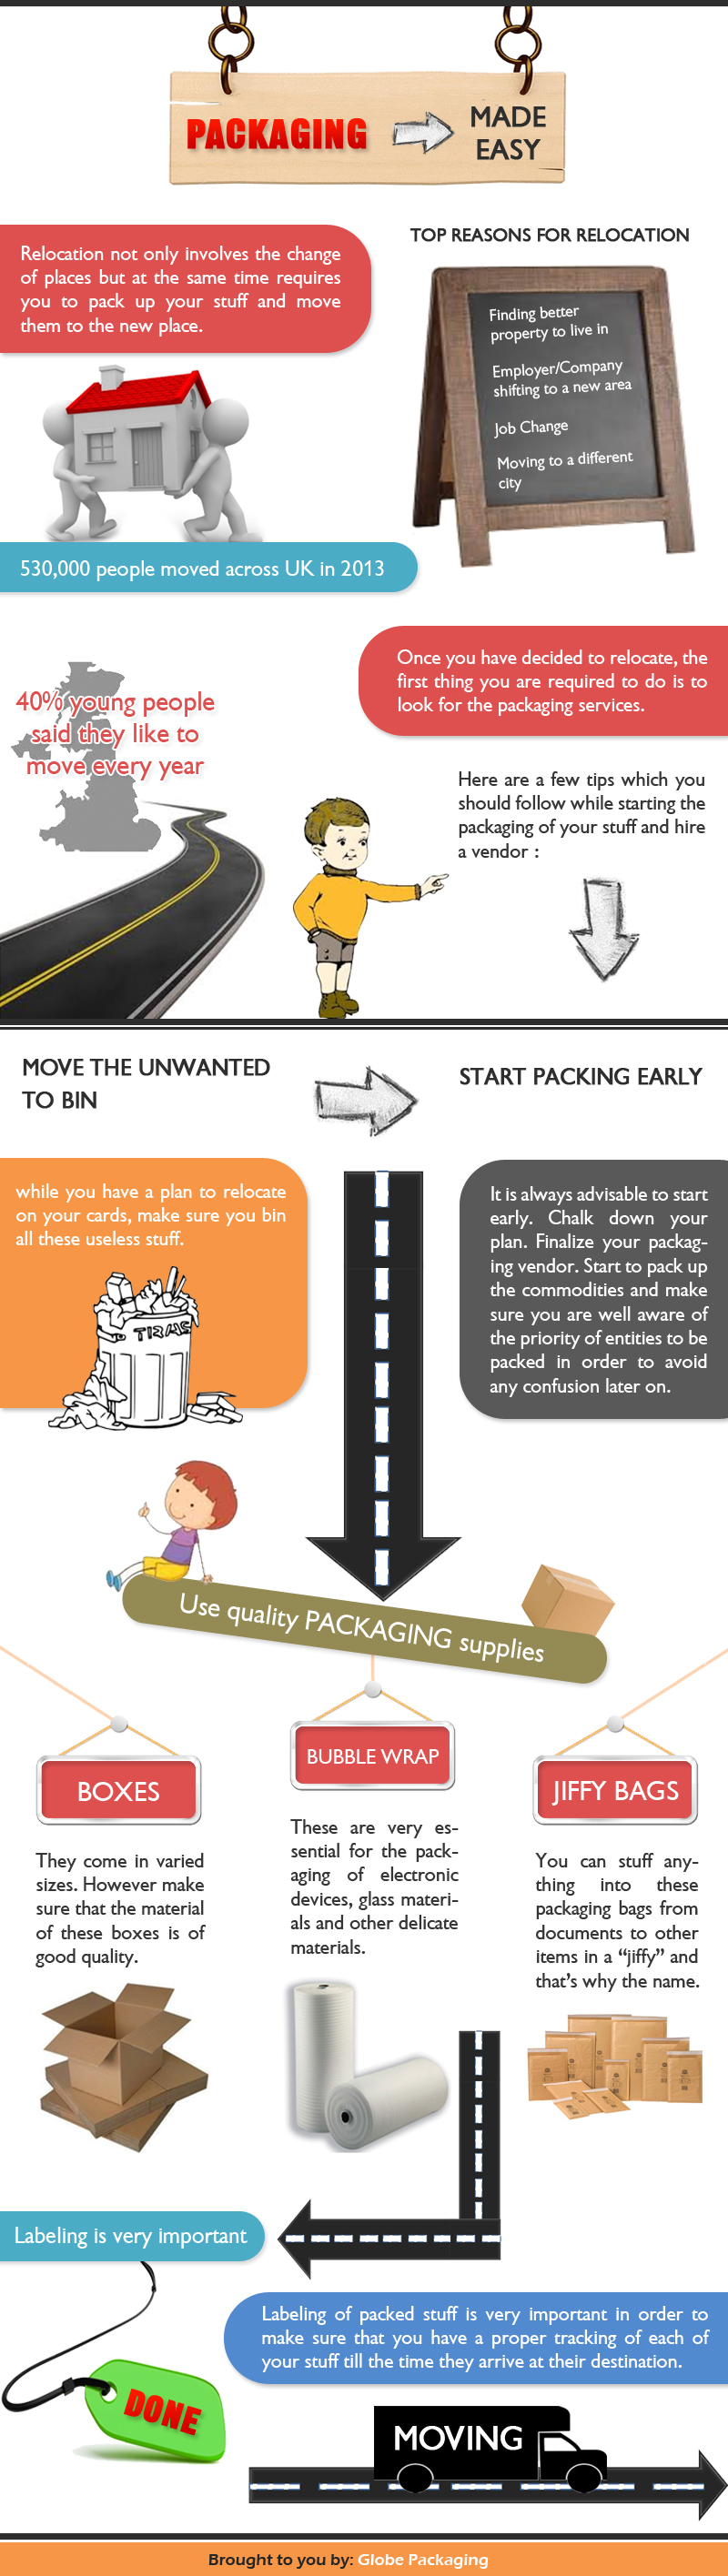 Packaging- Made Easy